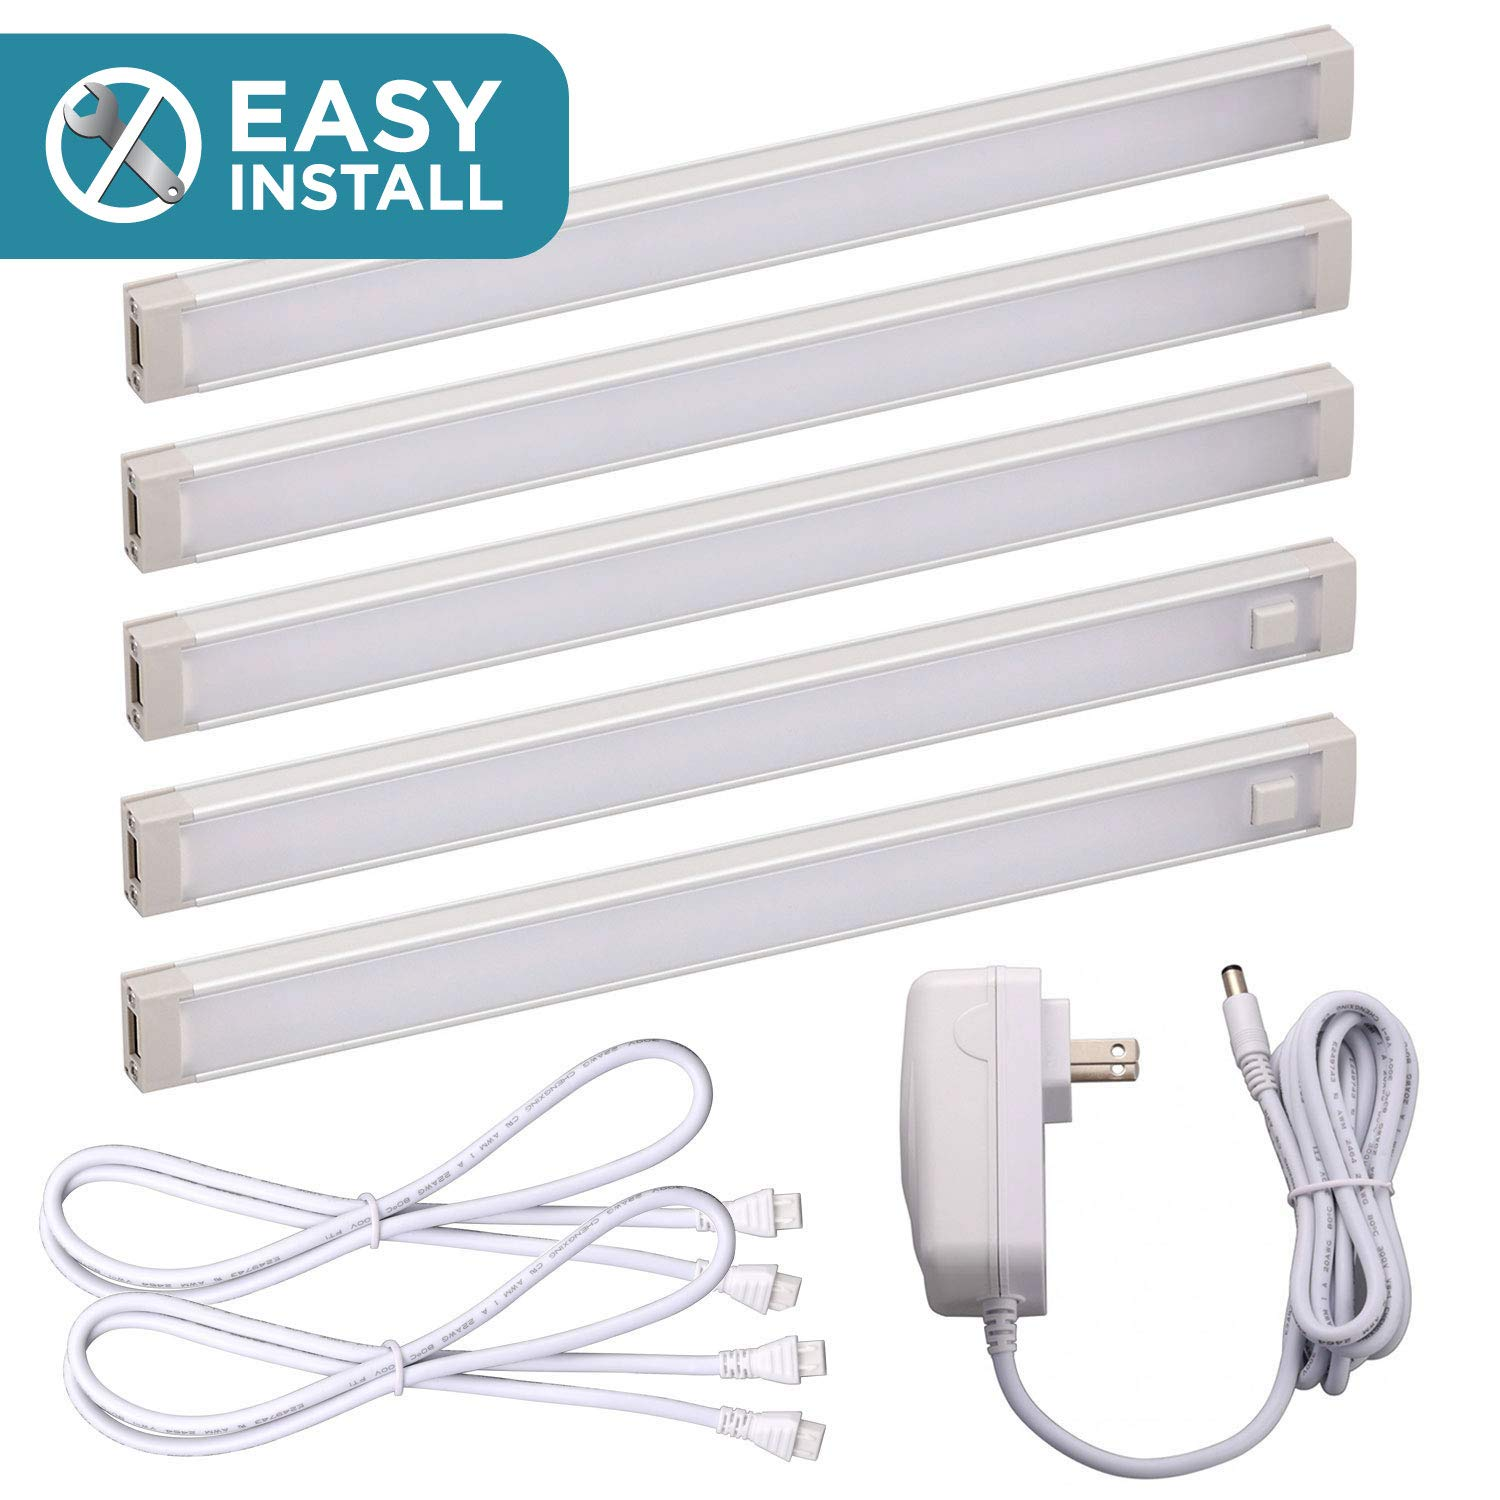 Black and Decker Office Products LED Under Cabinet Lighting Kit, 9'' Bars, Cool White (LEDUC9-5CK) by Black and Decker Office Products